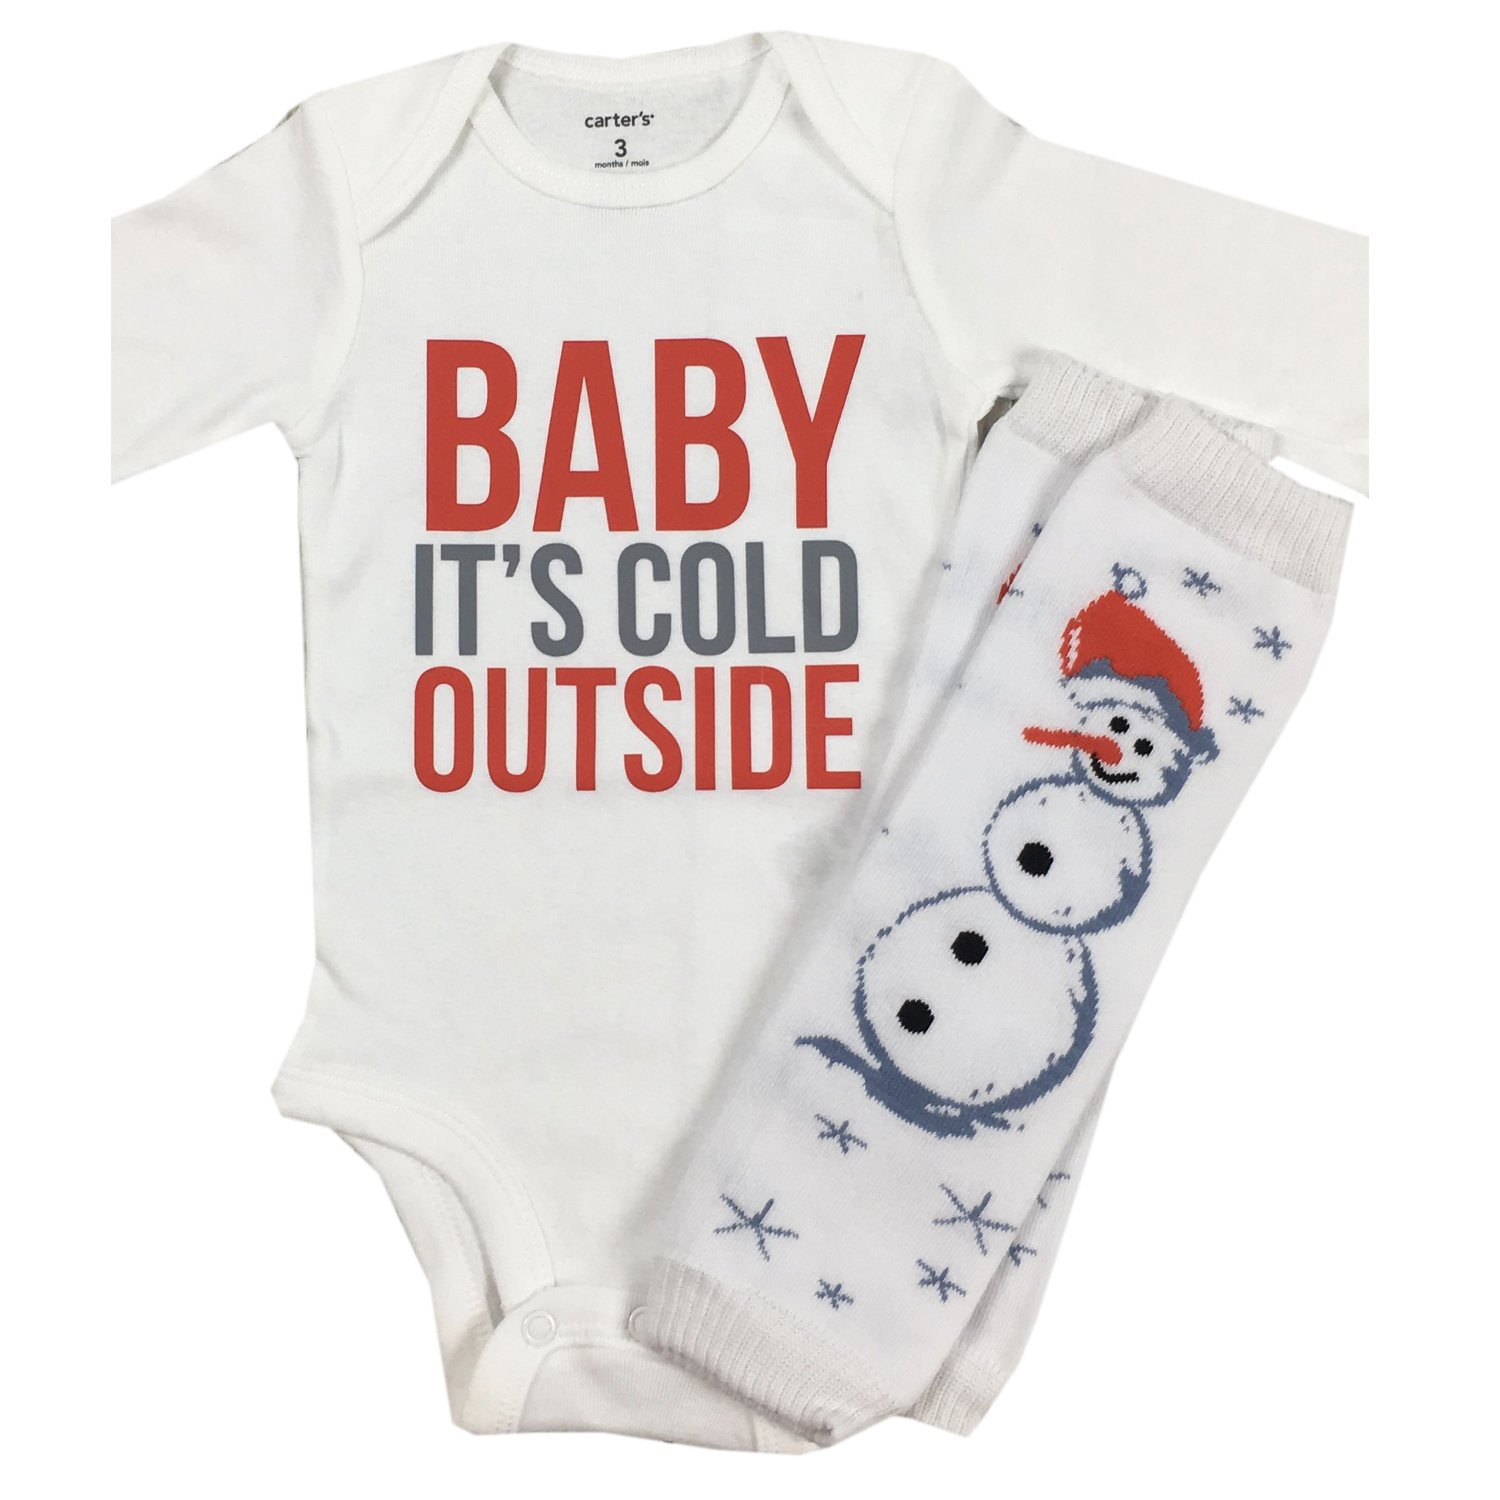 8e08b8df1325 Amazon.com: Simply Swanky Baby Boy Christmas Outfit Baby It's Cold Outside  Baby Winter 2 Piece Outfit: Clothing